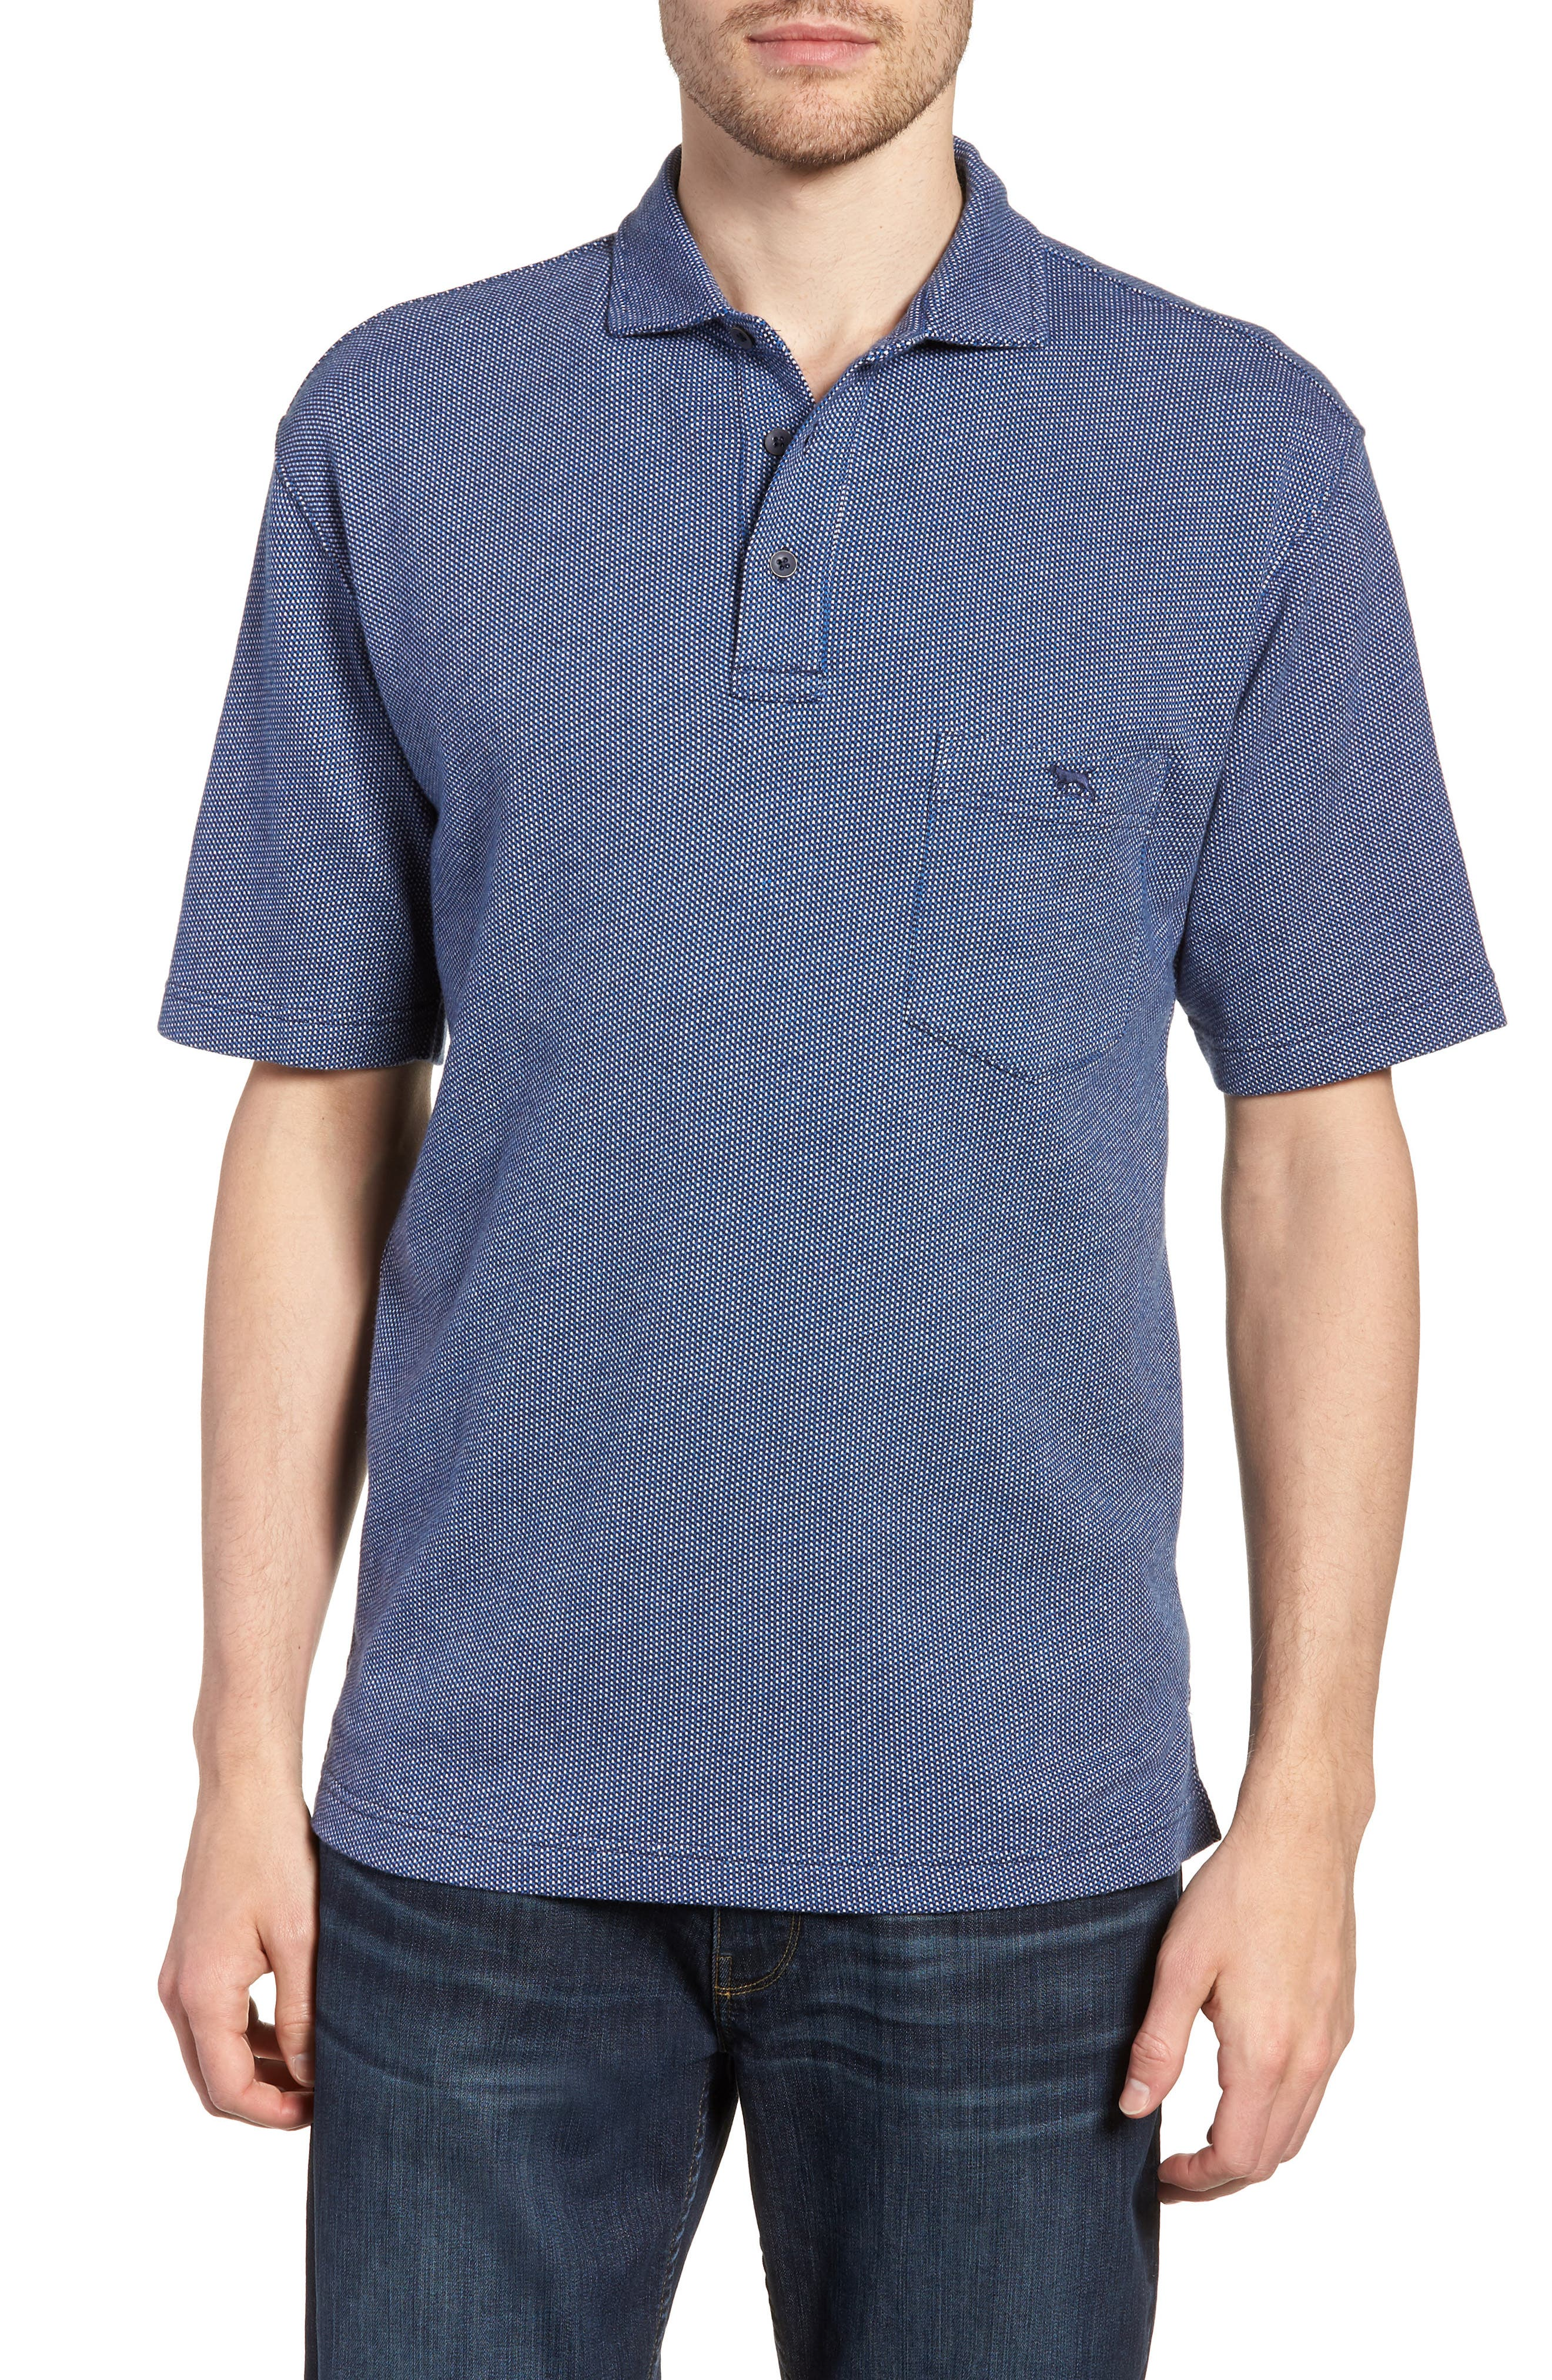 Springs Flat Regular Fit Polo,                         Main,                         color,